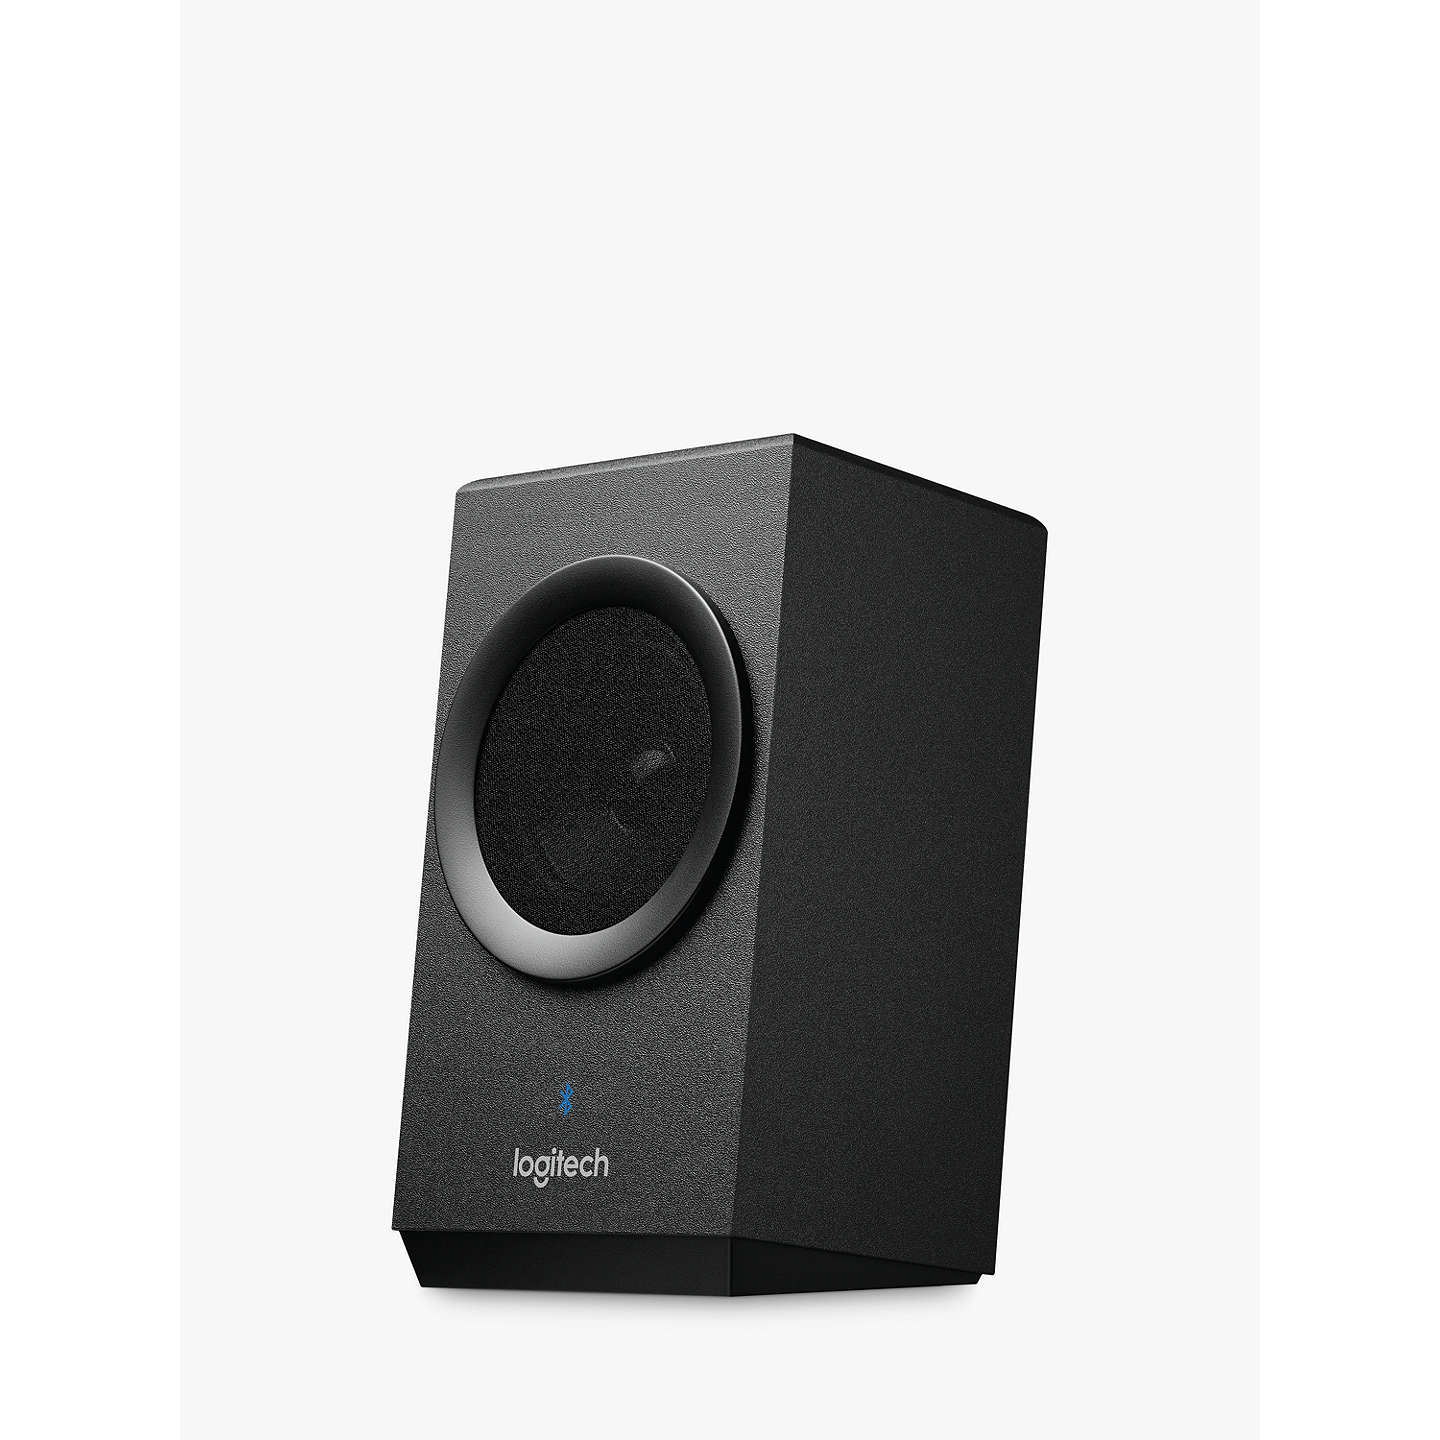 Logitech Z337 Bluetooth Wireless Multimedia Speaker System, Black At John Lewis